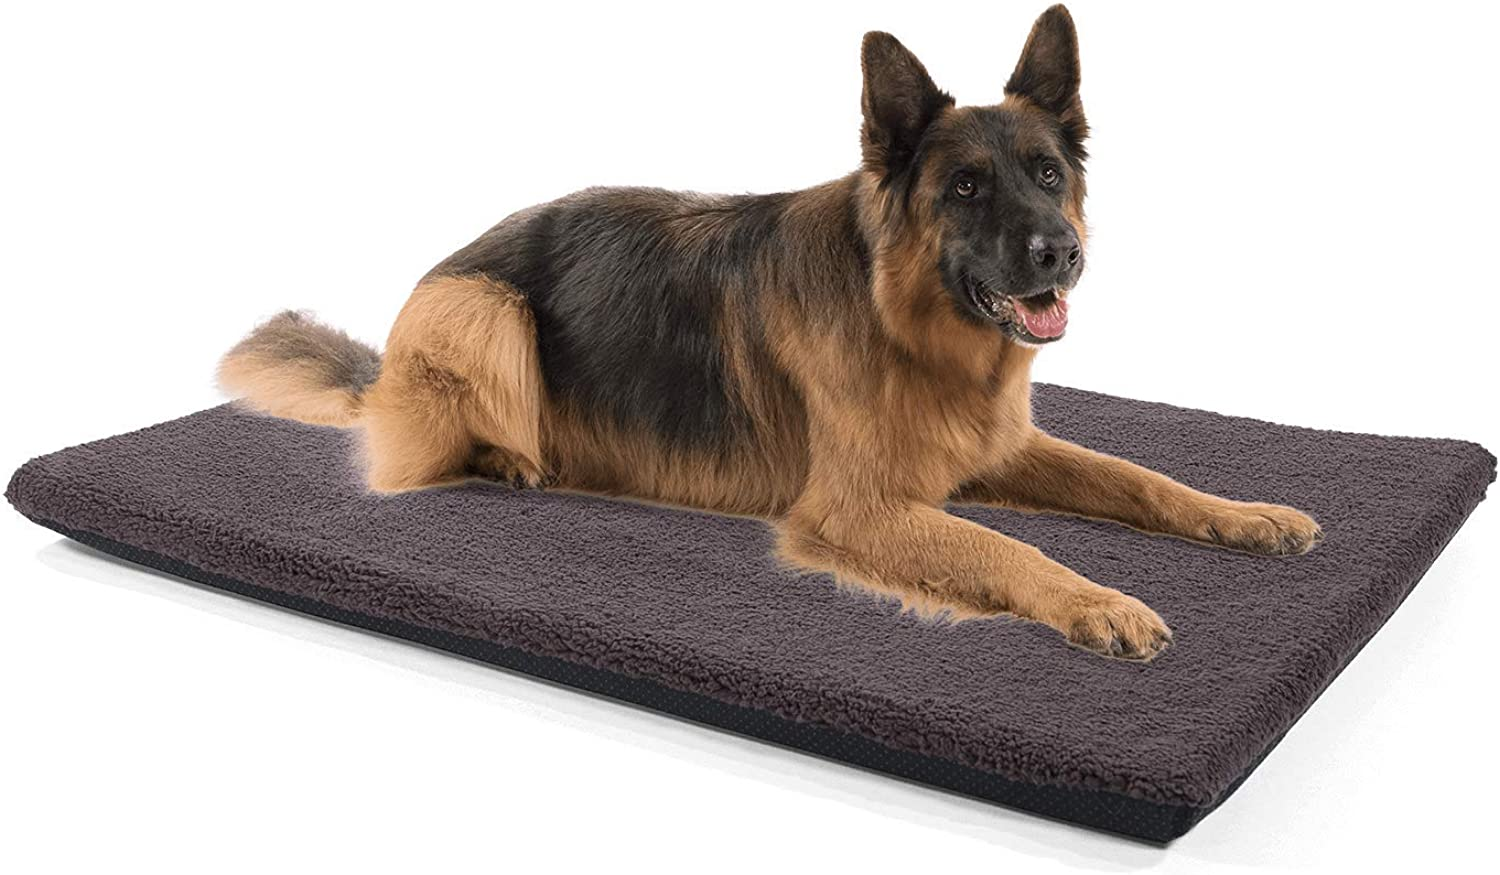 Brunolie  Nala nonslip dog mattress in darkbrown – dog bed with plush and zipper, suitable for dogs and cats, size L (120 x 80 x 5 cm)